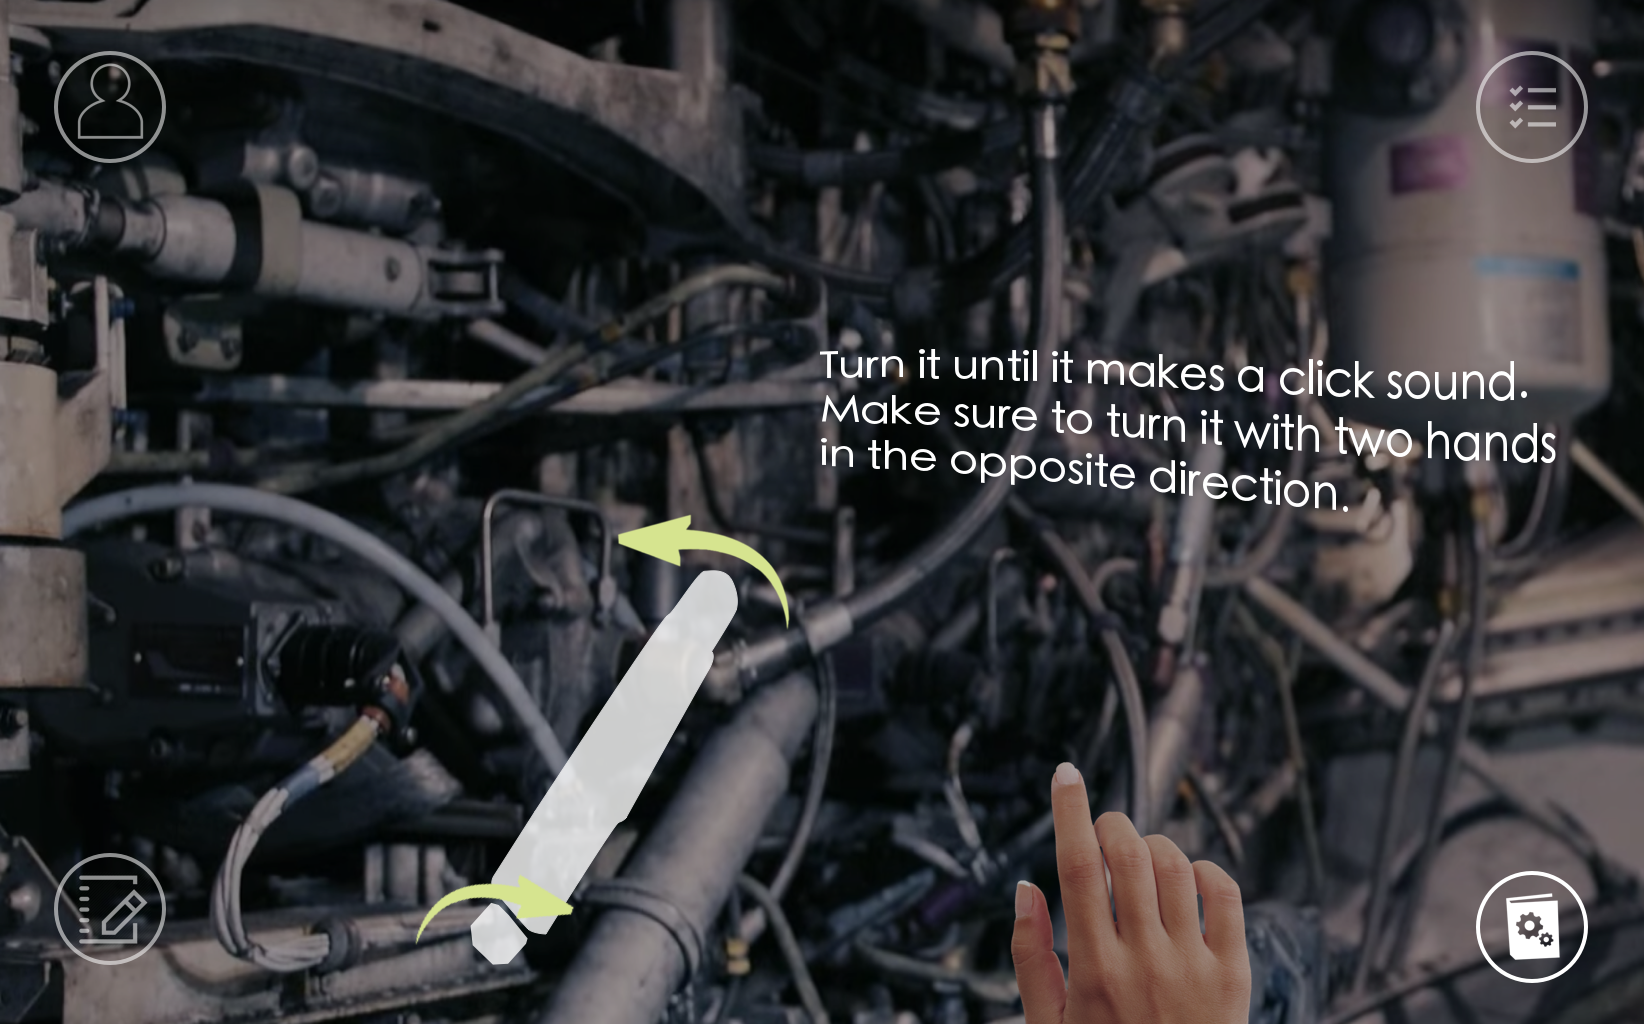 Repair Manual with Watson Assistant.png